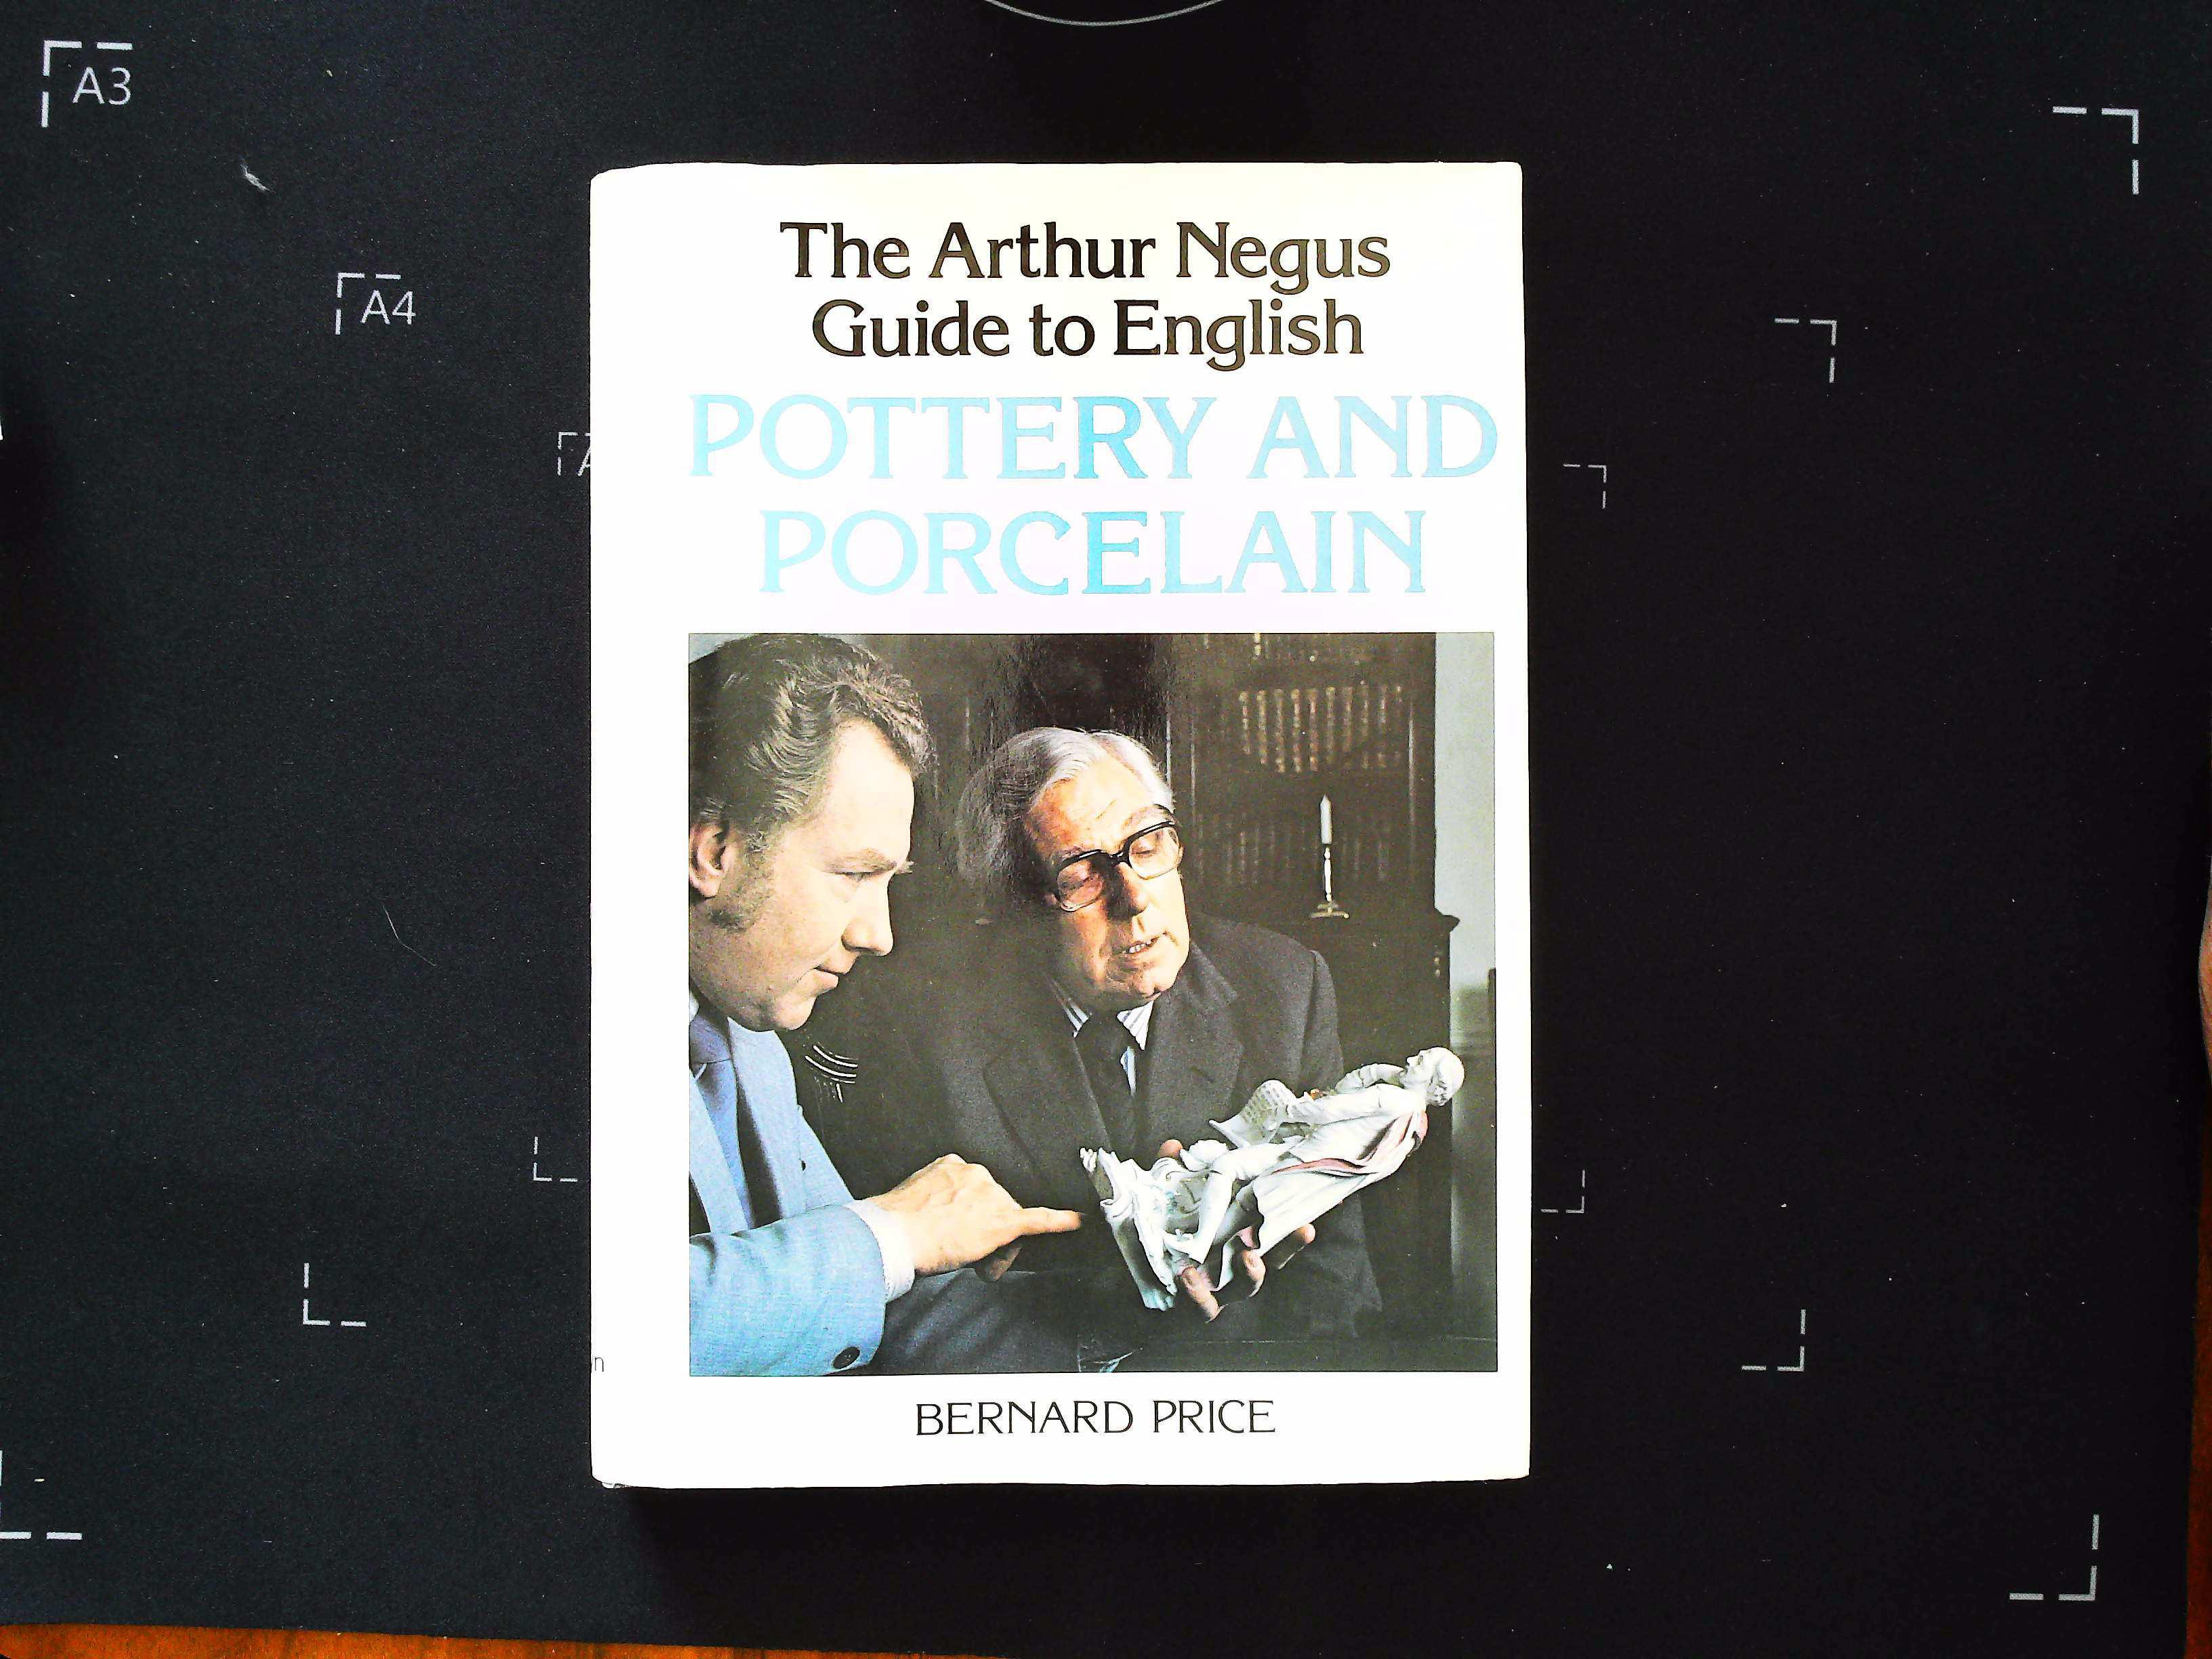 The Arthur Negus Guide to English Pottery and Porcelain by Bernard Price 176 pages Published 1981